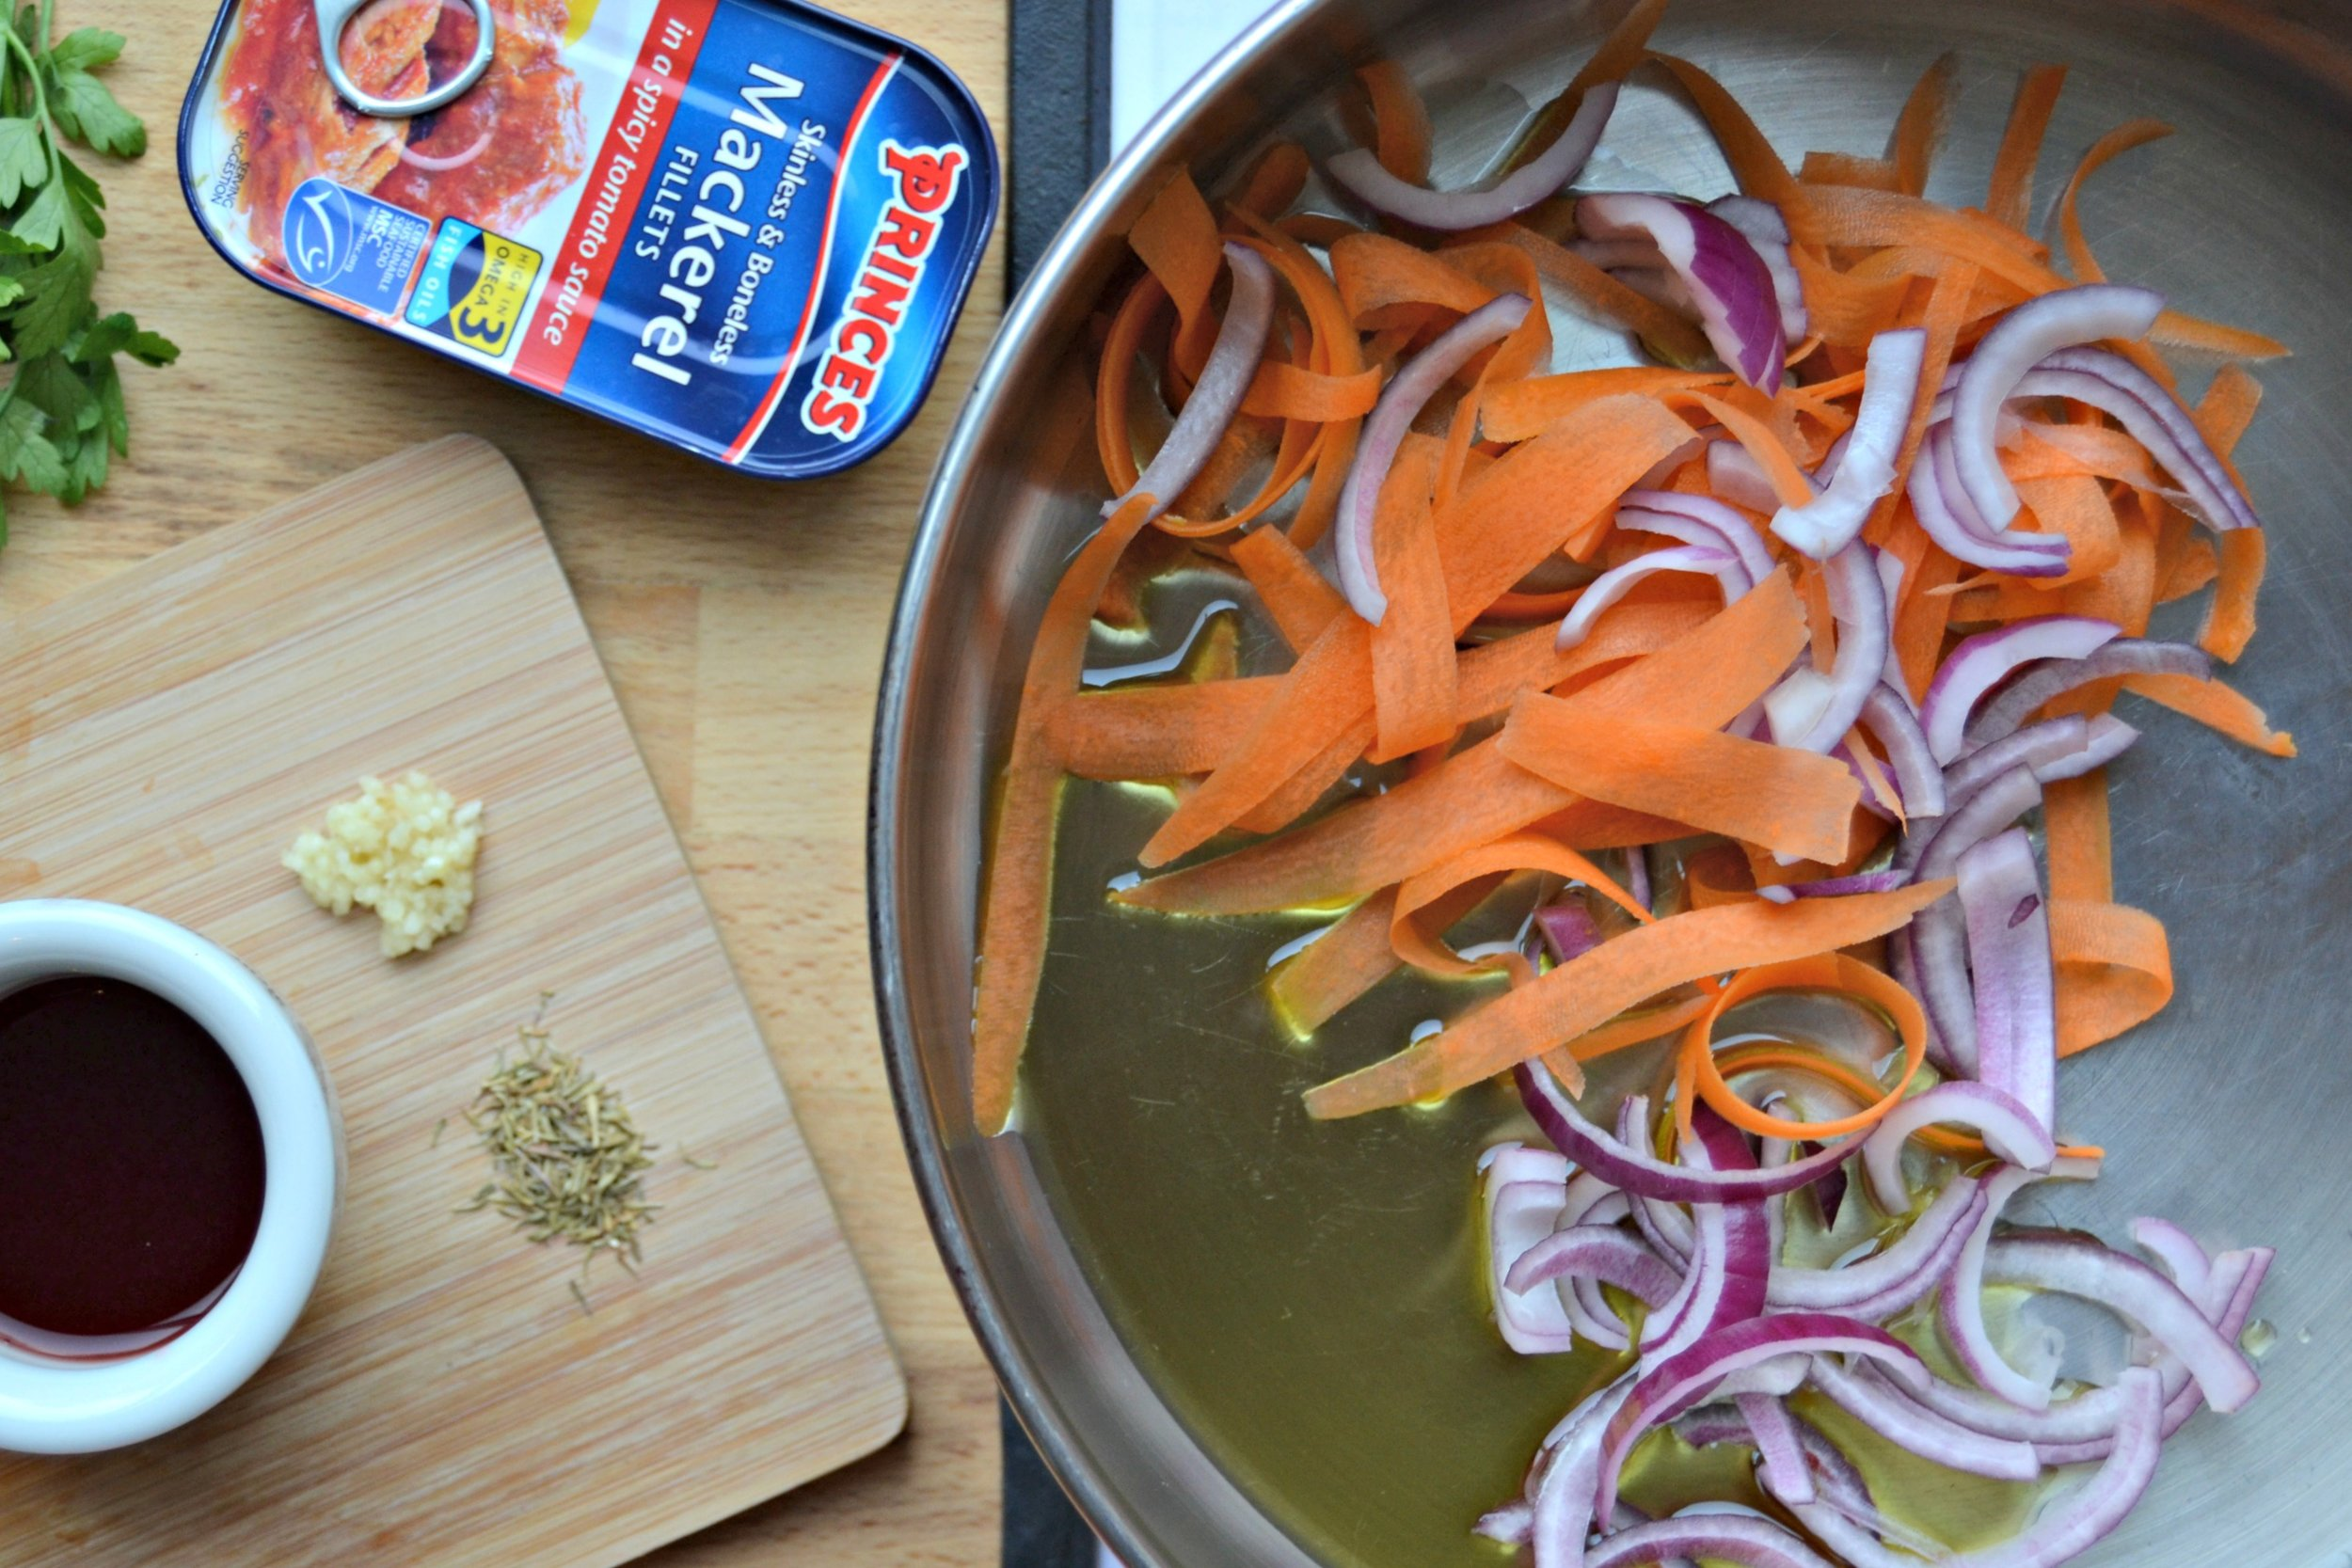 2.Add the onion and carrot. Cook for 3-4 minutes until just soft stirring frequently.